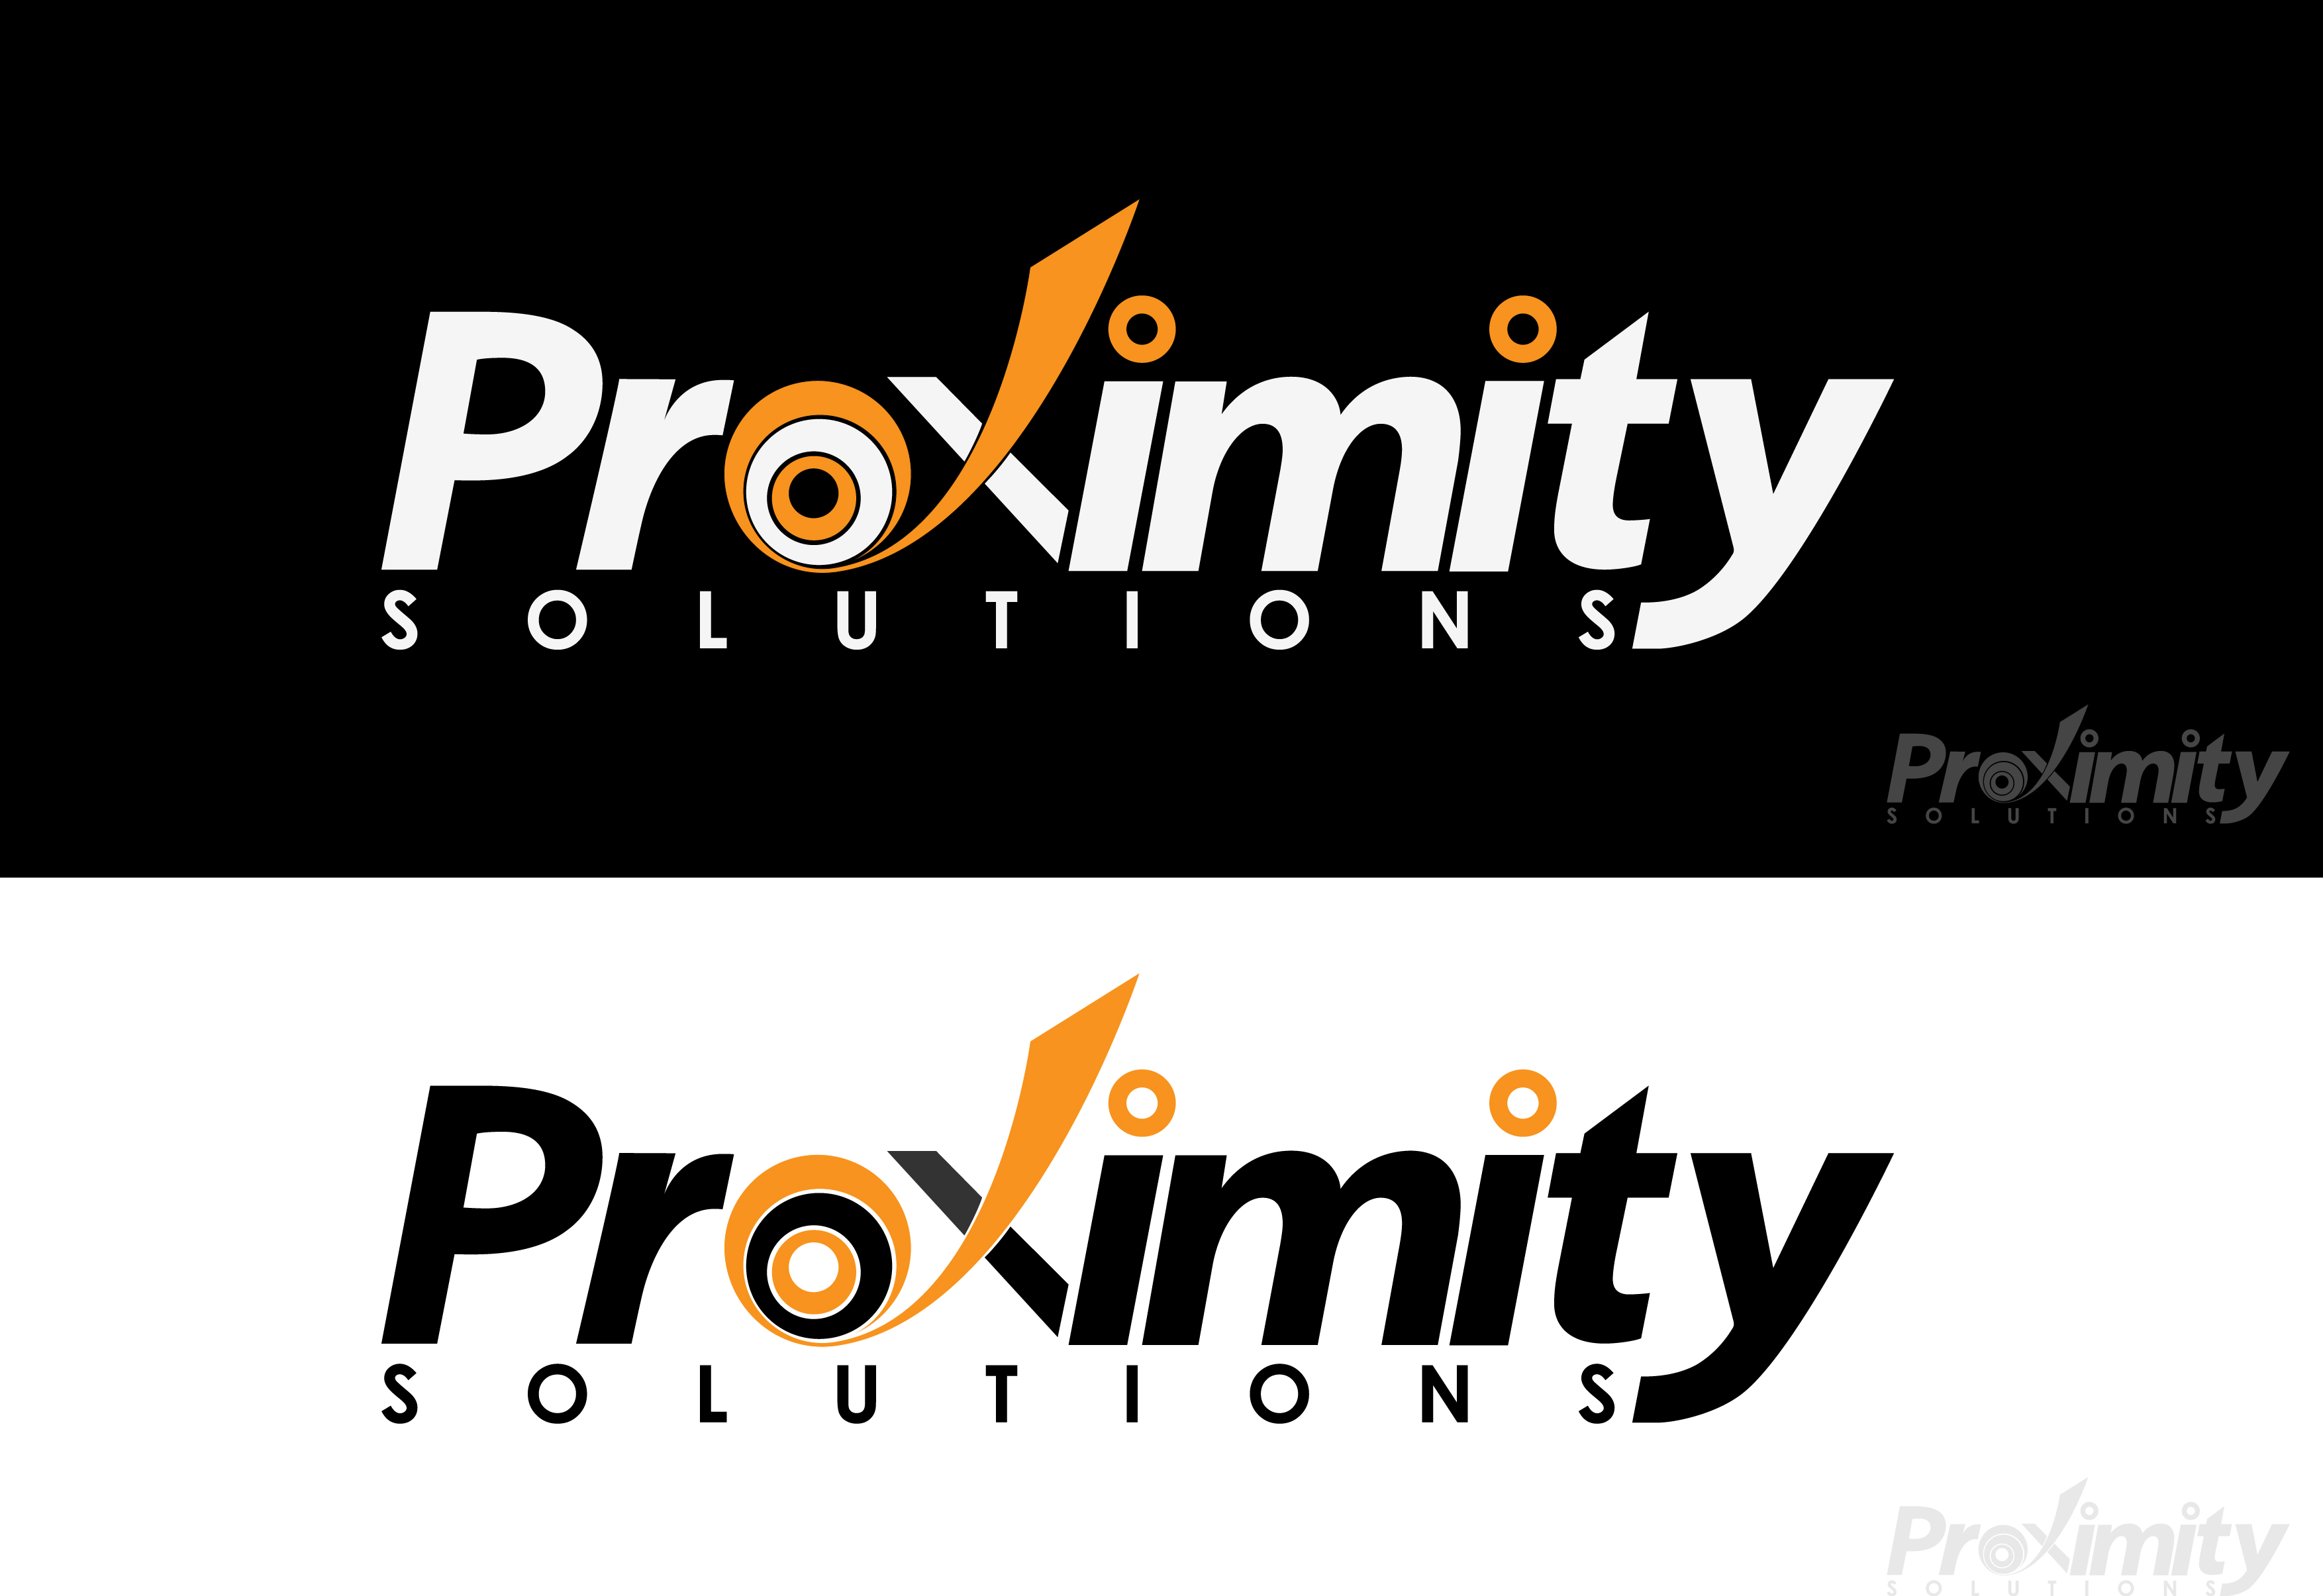 Logo Design by 3draw - Entry No. 112 in the Logo Design Contest New Logo Design for Proximity Solutions.